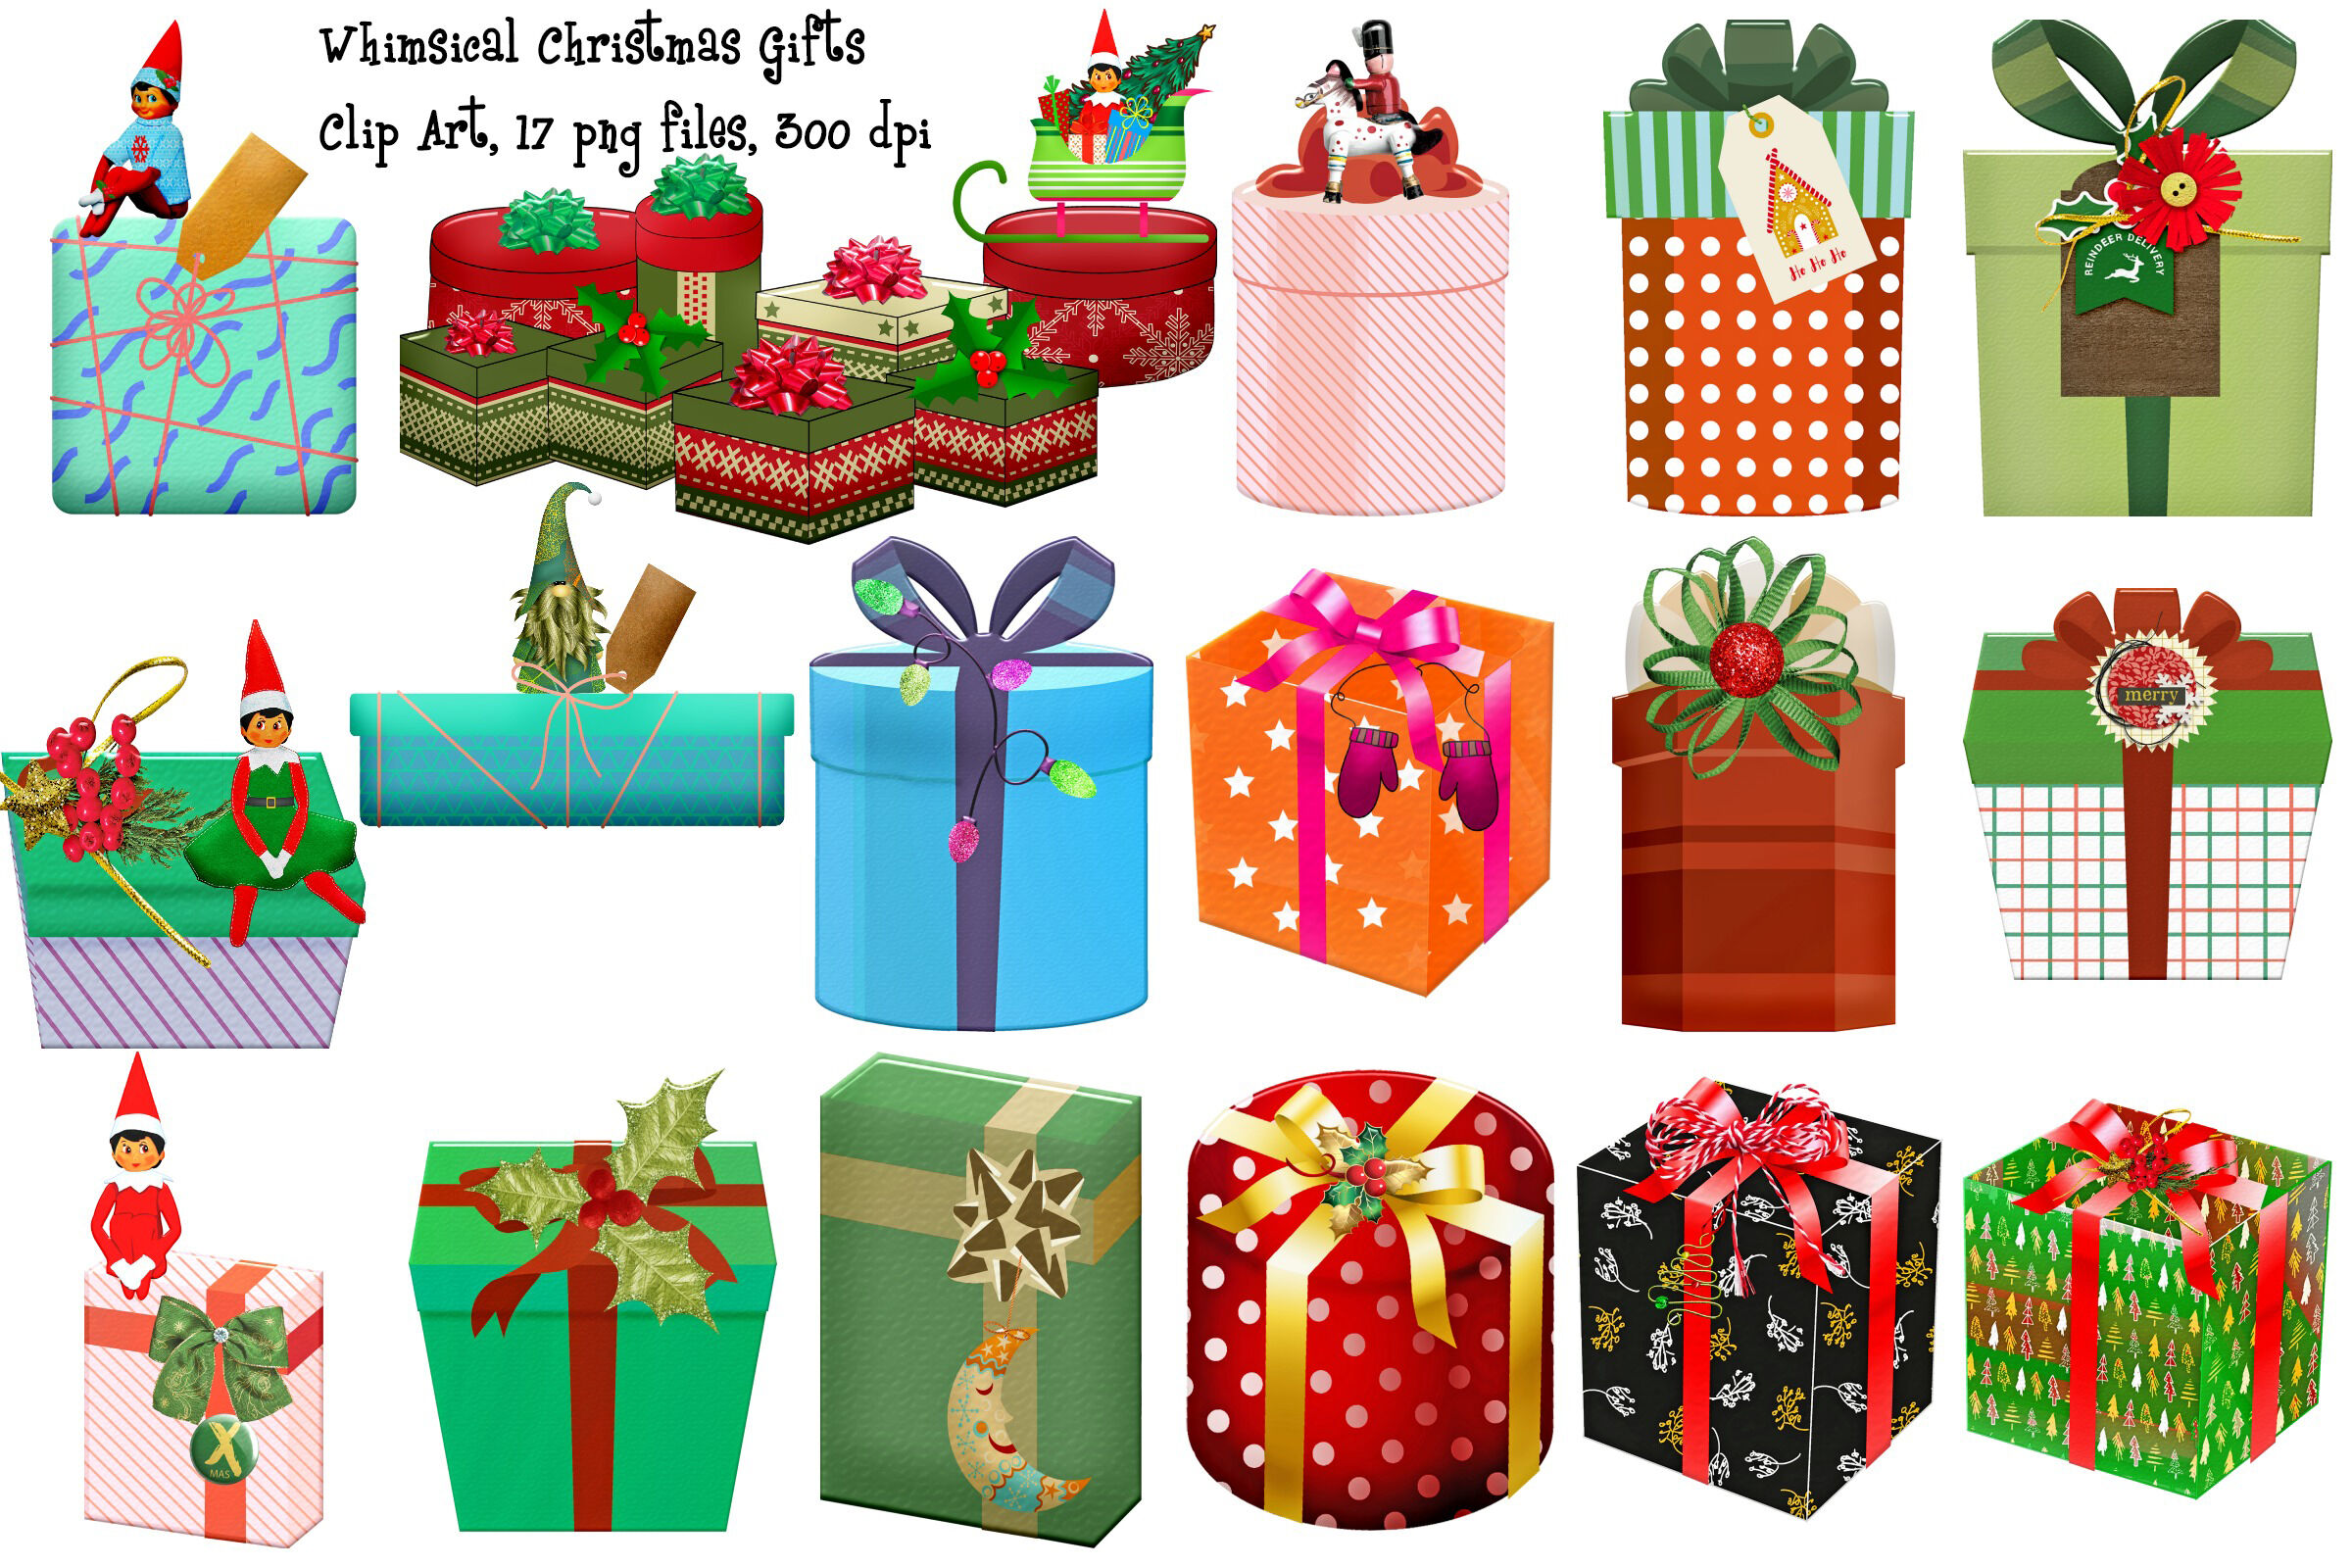 Whimsical Christmas Gifts Clip Art By Me and Ameliè.